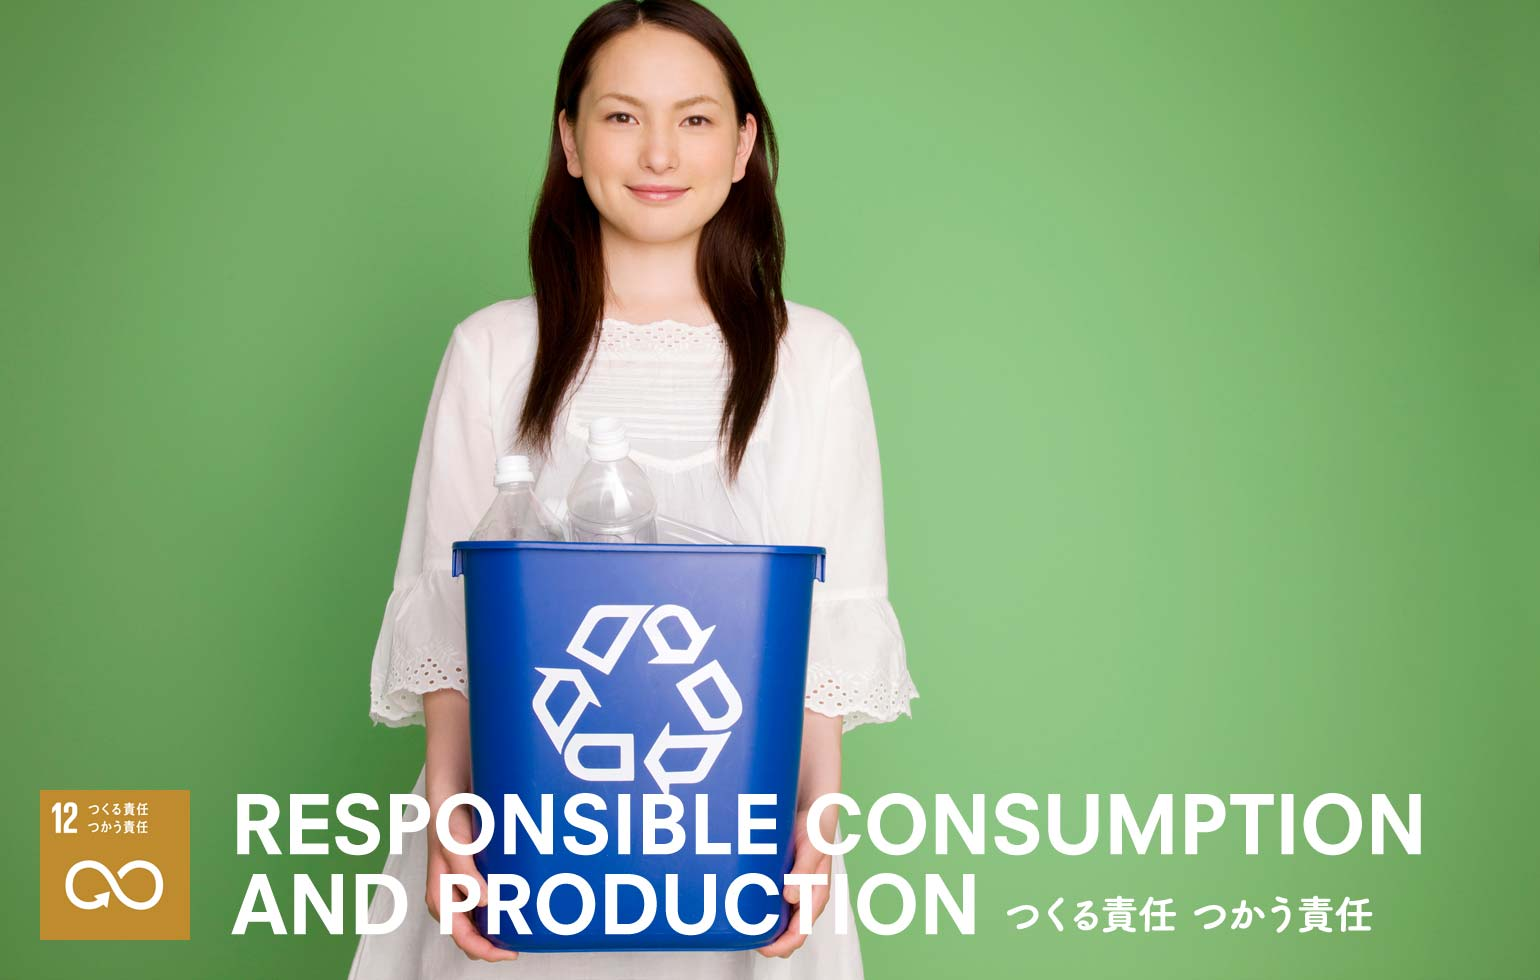 RESPONSIBLE CONSUMPTION AND PRODUCTION - つくる責任 つかう責任 SDGs 画像素材